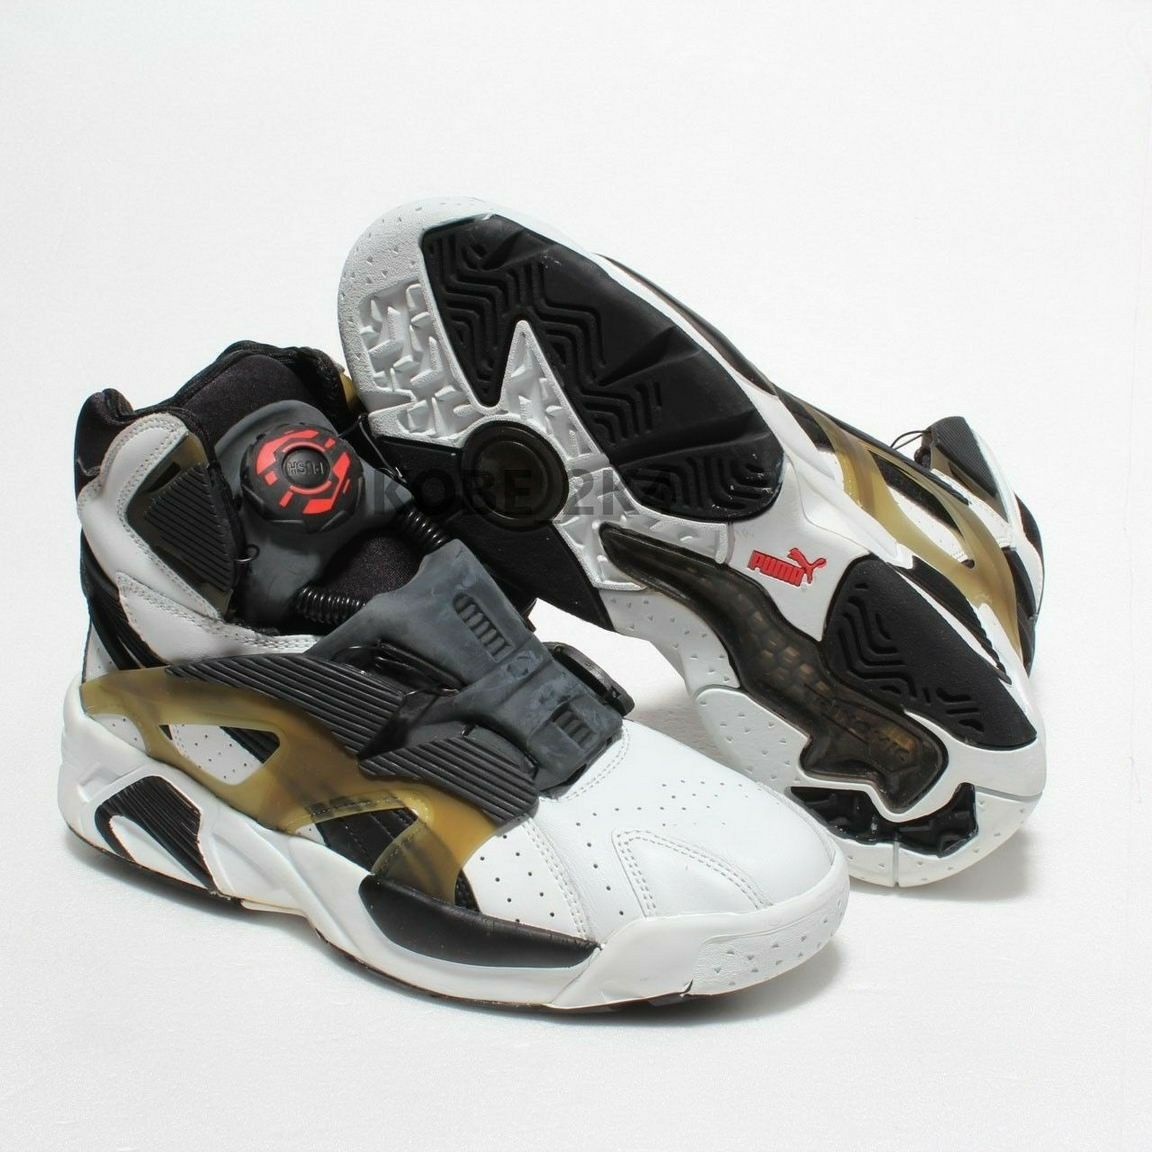 Puma Disc Weapon | Sneakers, Shoe collection, Shoes